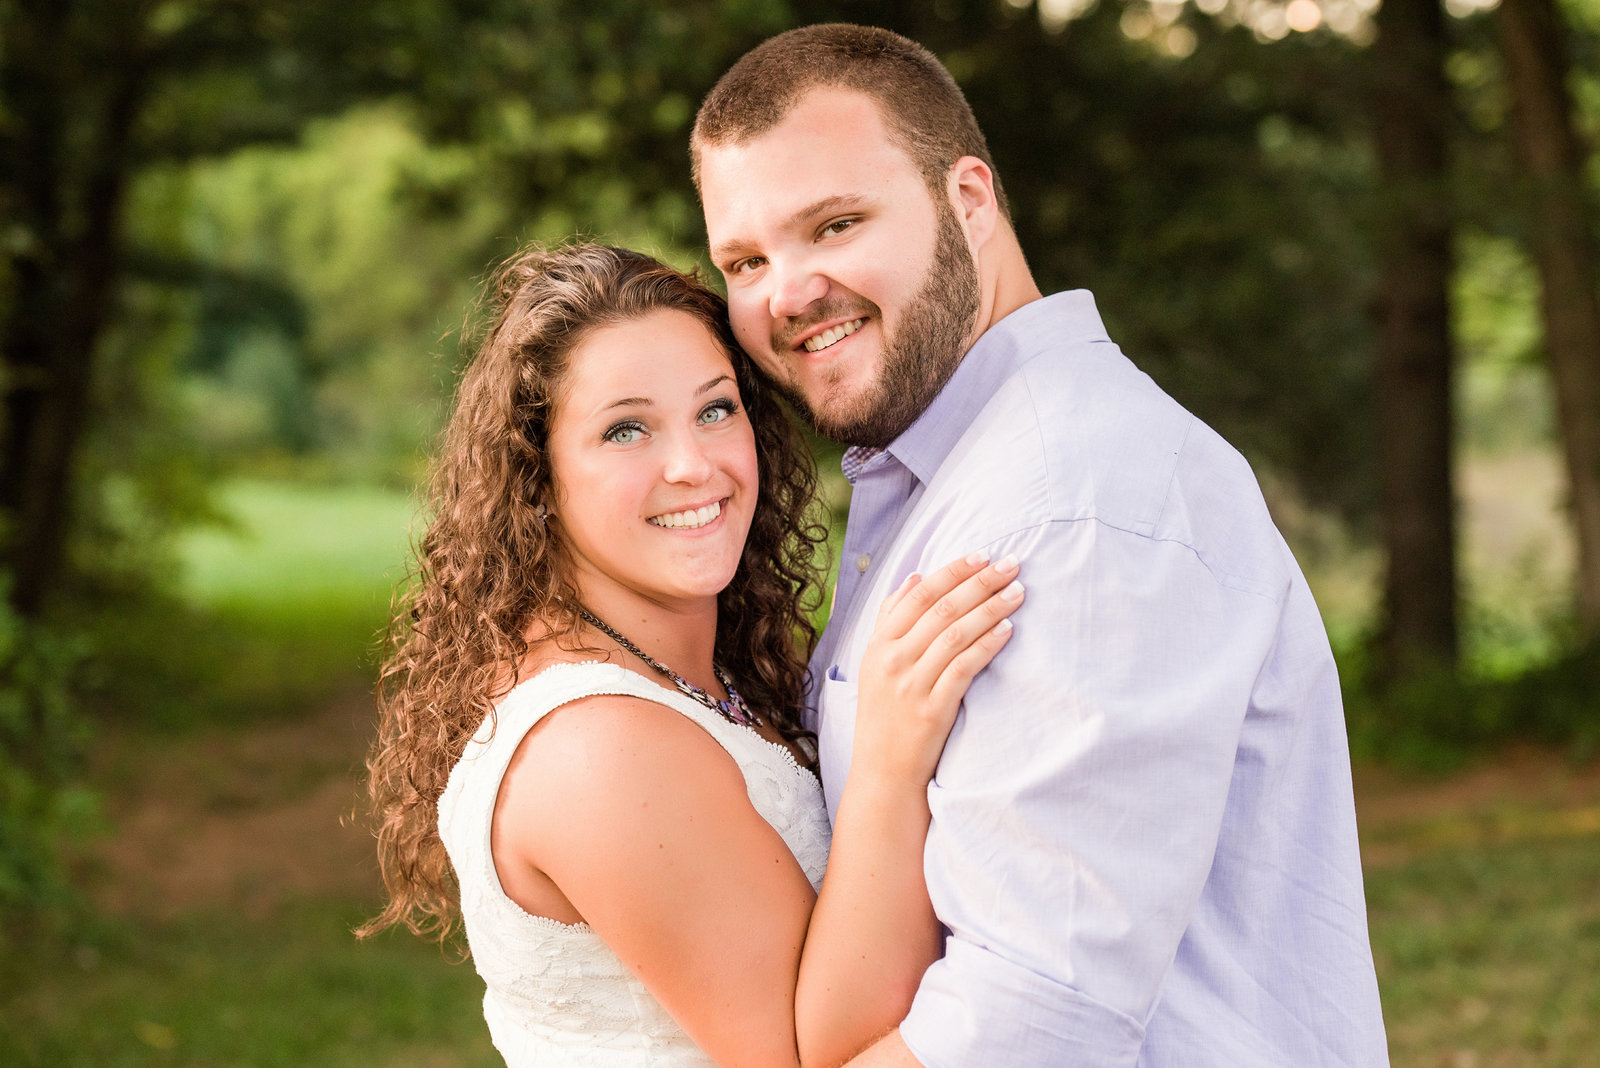 NJ_Rustic_Engagement_Photography146